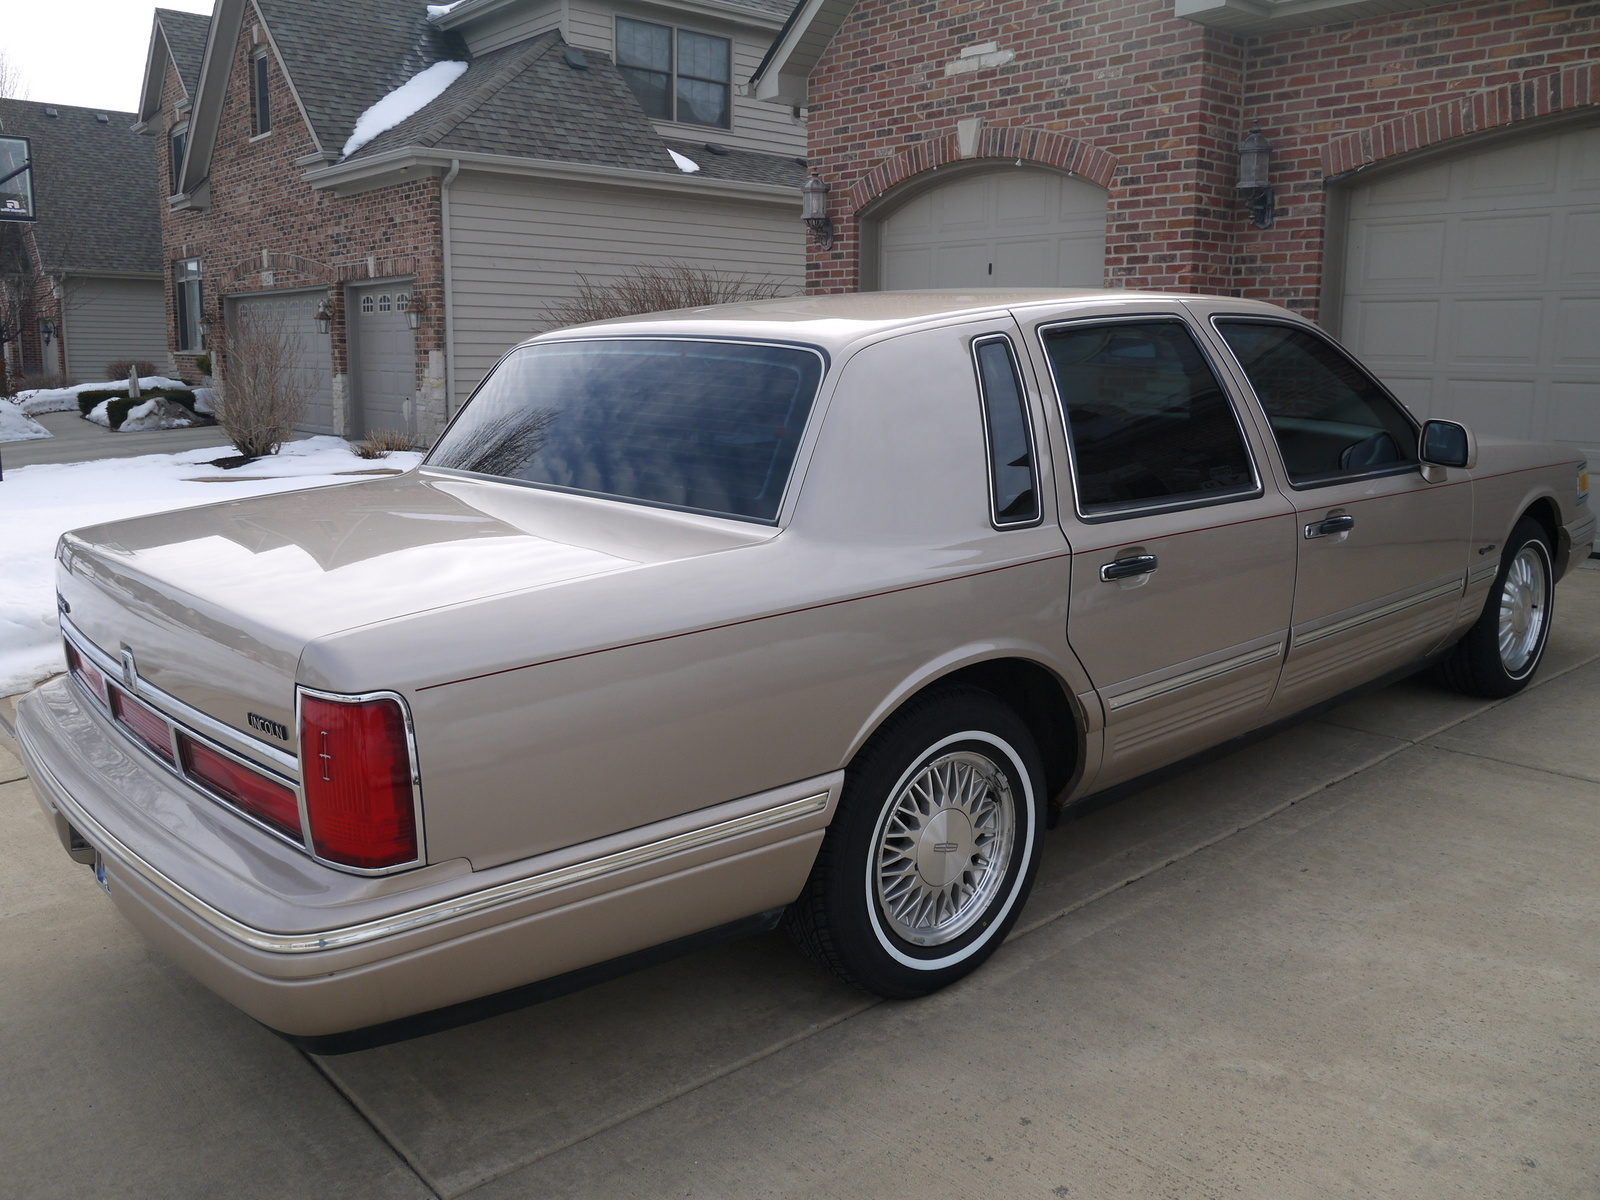 1997 Lincoln Town Car - Pictures